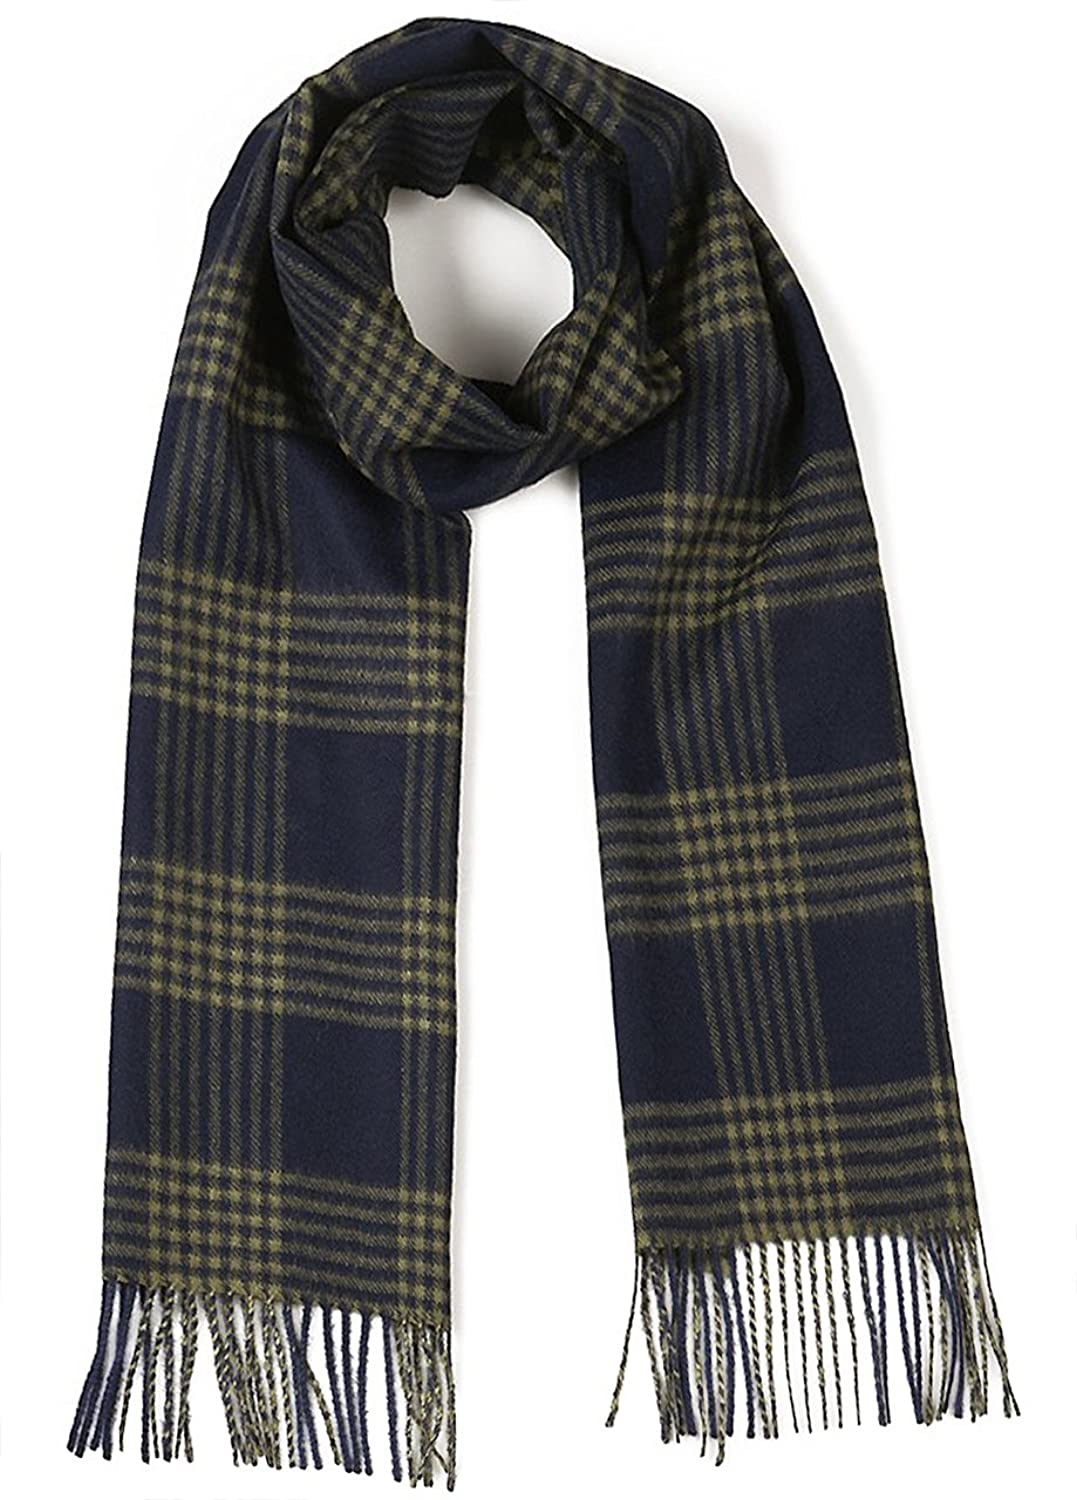 Cross Hatch Plaid Scarf 100% Pure Baby Alpaca - Unequaled Luxury for Men & Women